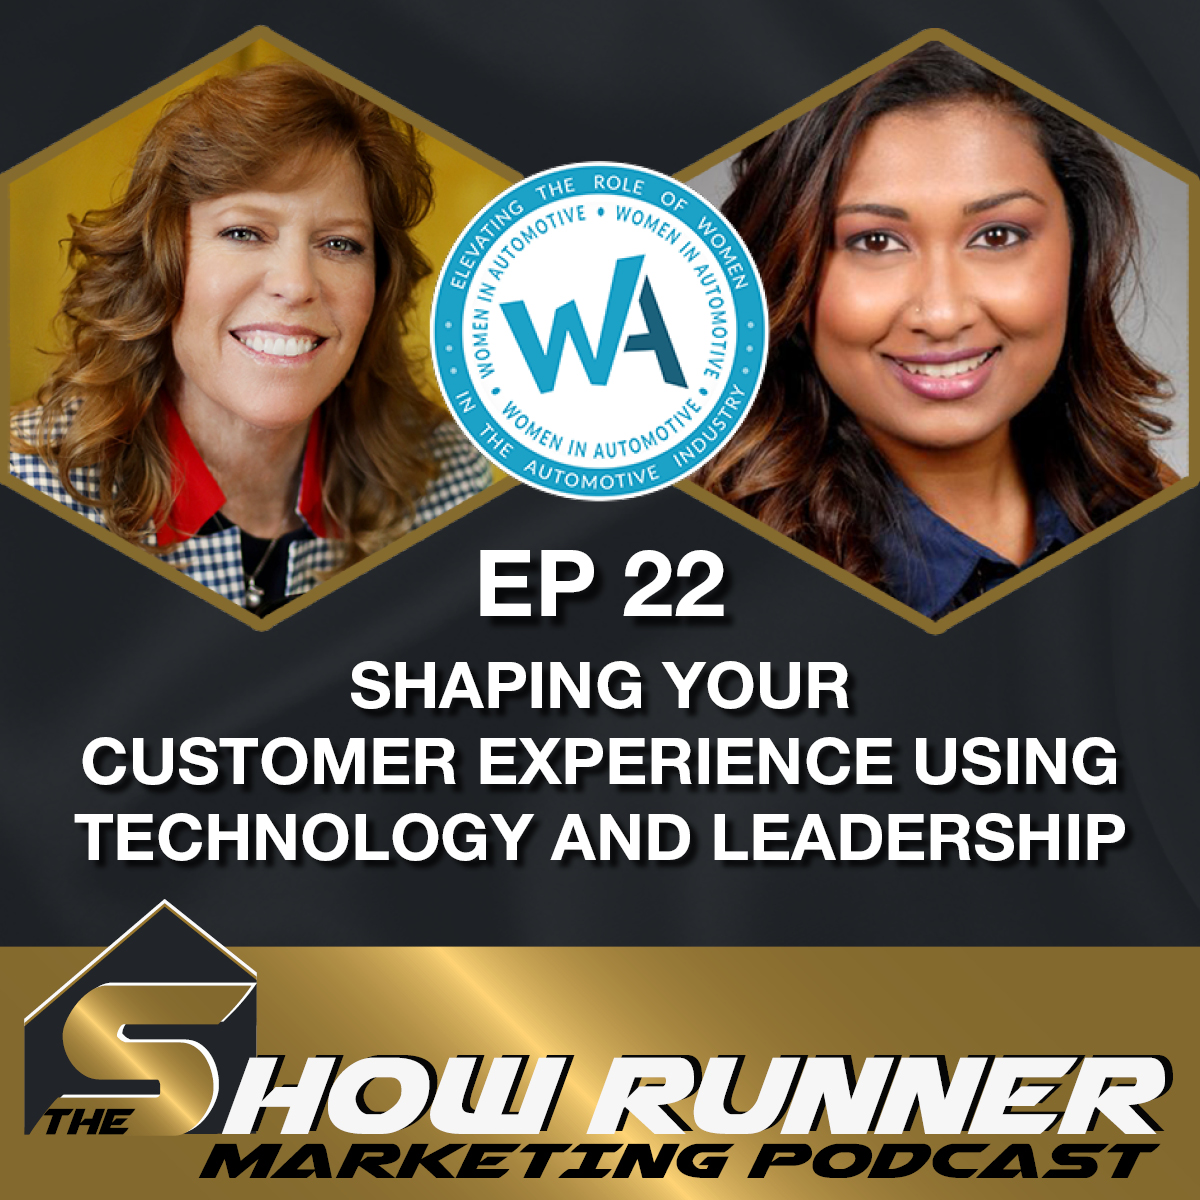 The Show Runner Marketing Podcast Interviews Women In Automotive Founder, Subi Fernando Ghosh About Leadership, Diversity And Real Company Culture.